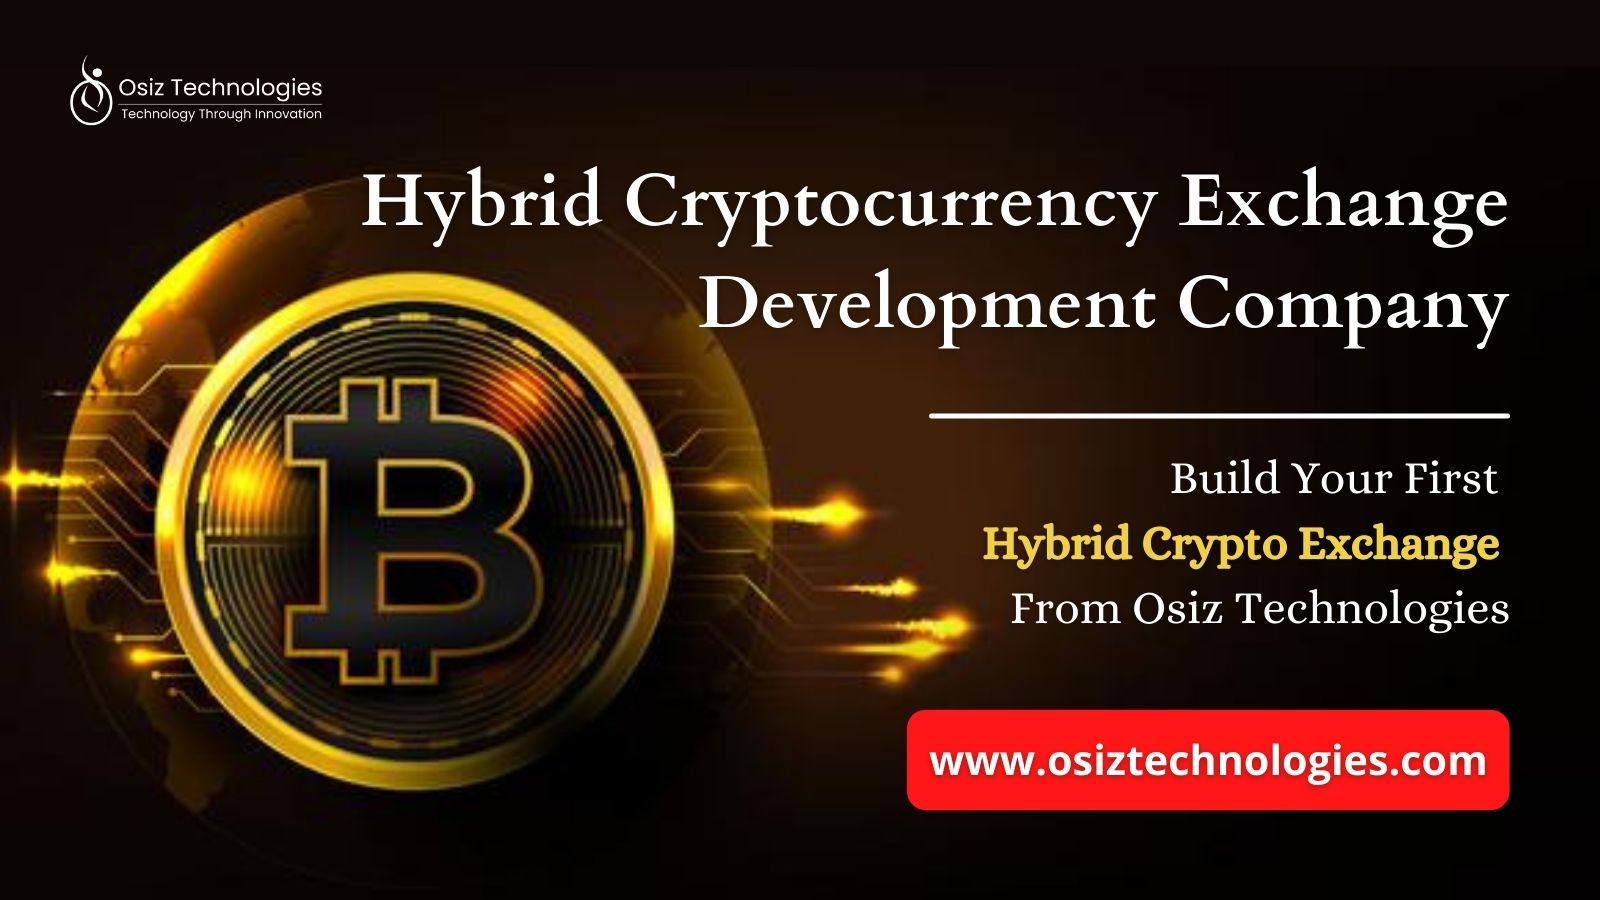 Hybrid Cryptocurrency Exchange Development Company- Build Your First Hybrid Crypto Exchange And Stand Out Unique From Others